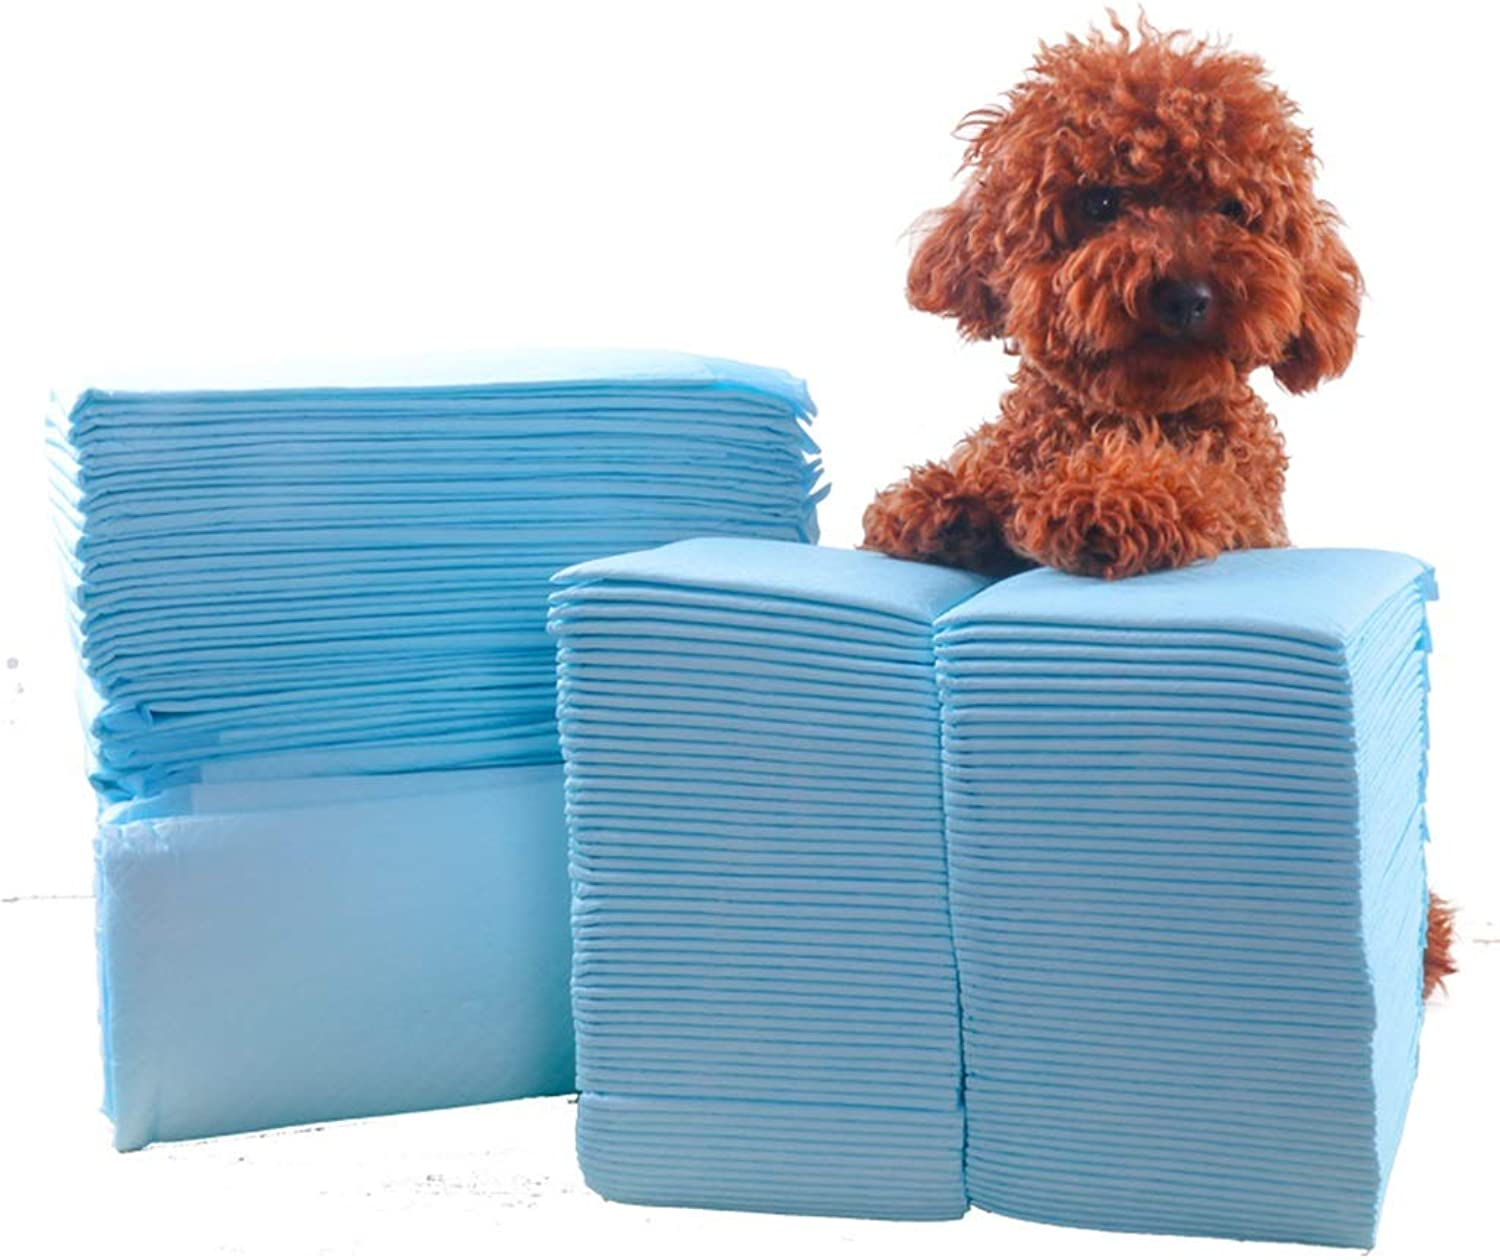 LLHYOO Pet Training Pads, Dog Pad Thickening Deodorant Teddy Paper Diapers Disposable Training Nonwet Absorbent Pad Pet CESUO (Size   45cm60cm (50 pieces))